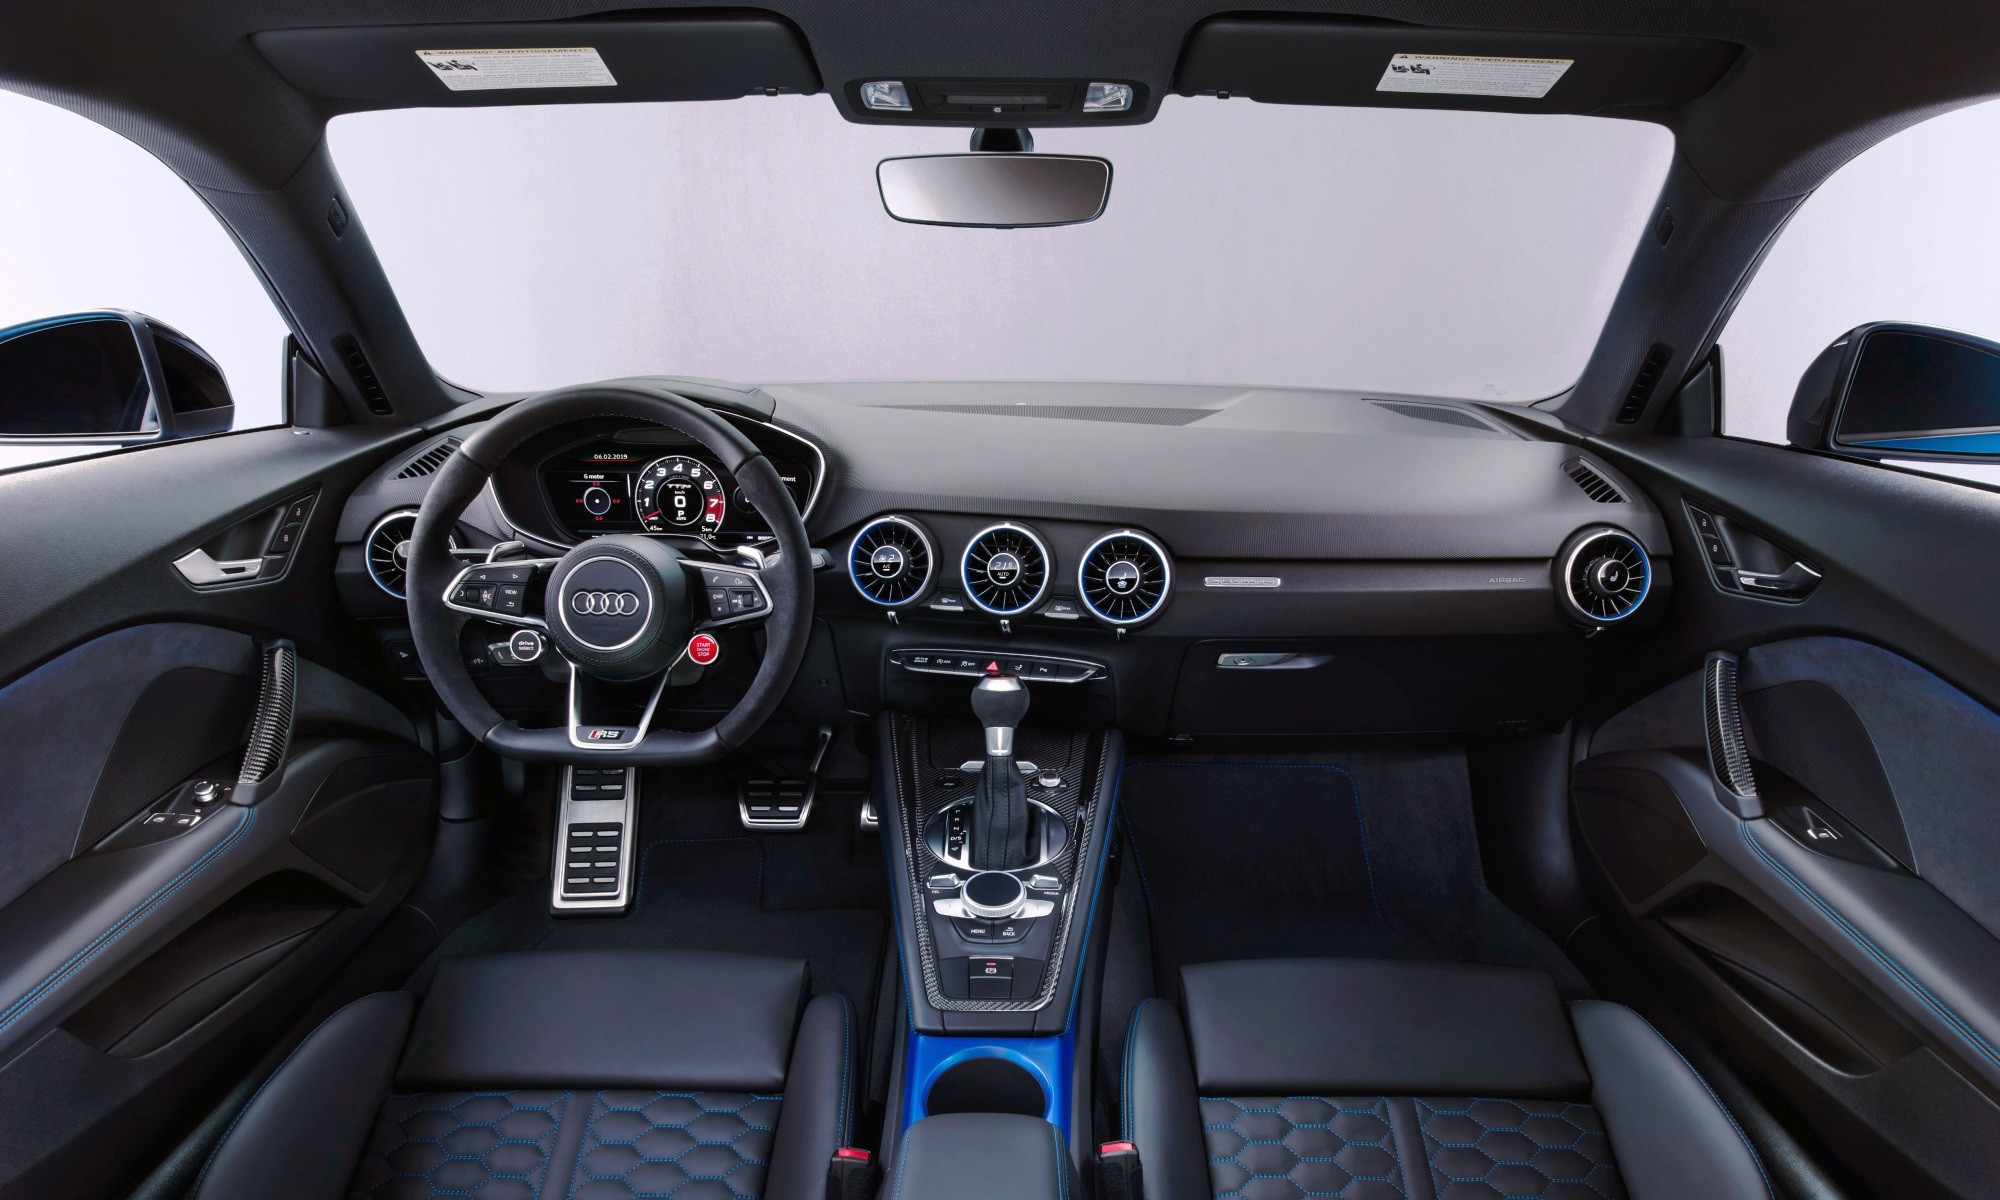 Refreshed Audi TT RS interior